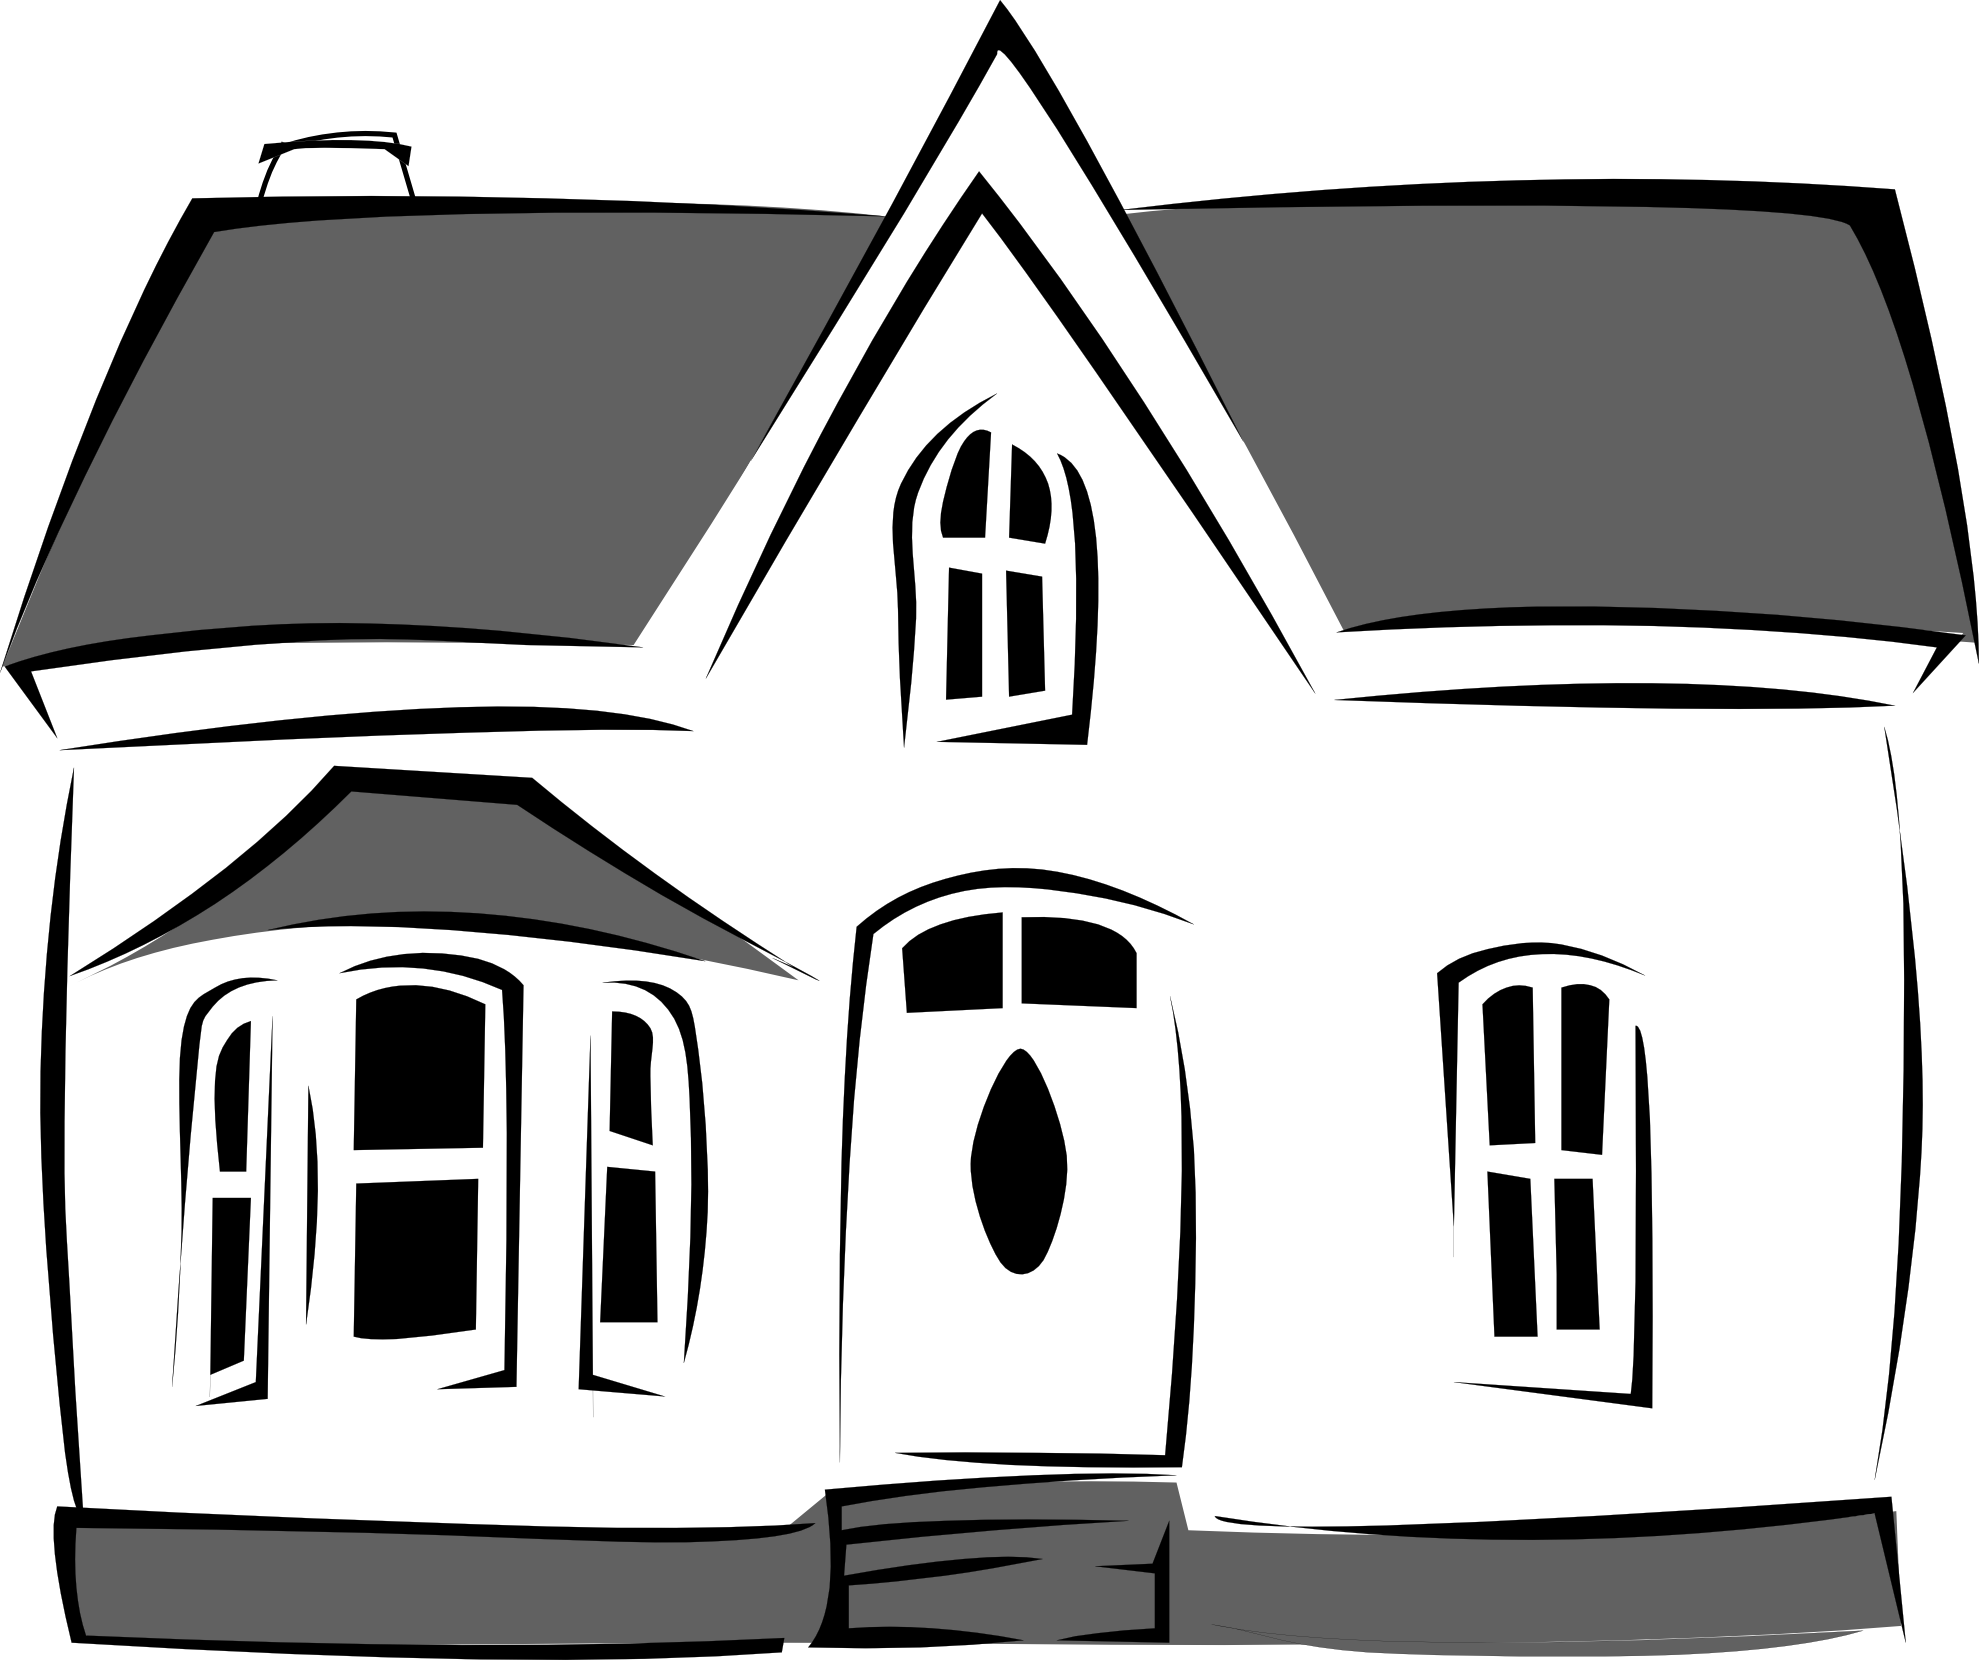 High class house interior clipart graphic black and white download 19th Century graphic black and white download